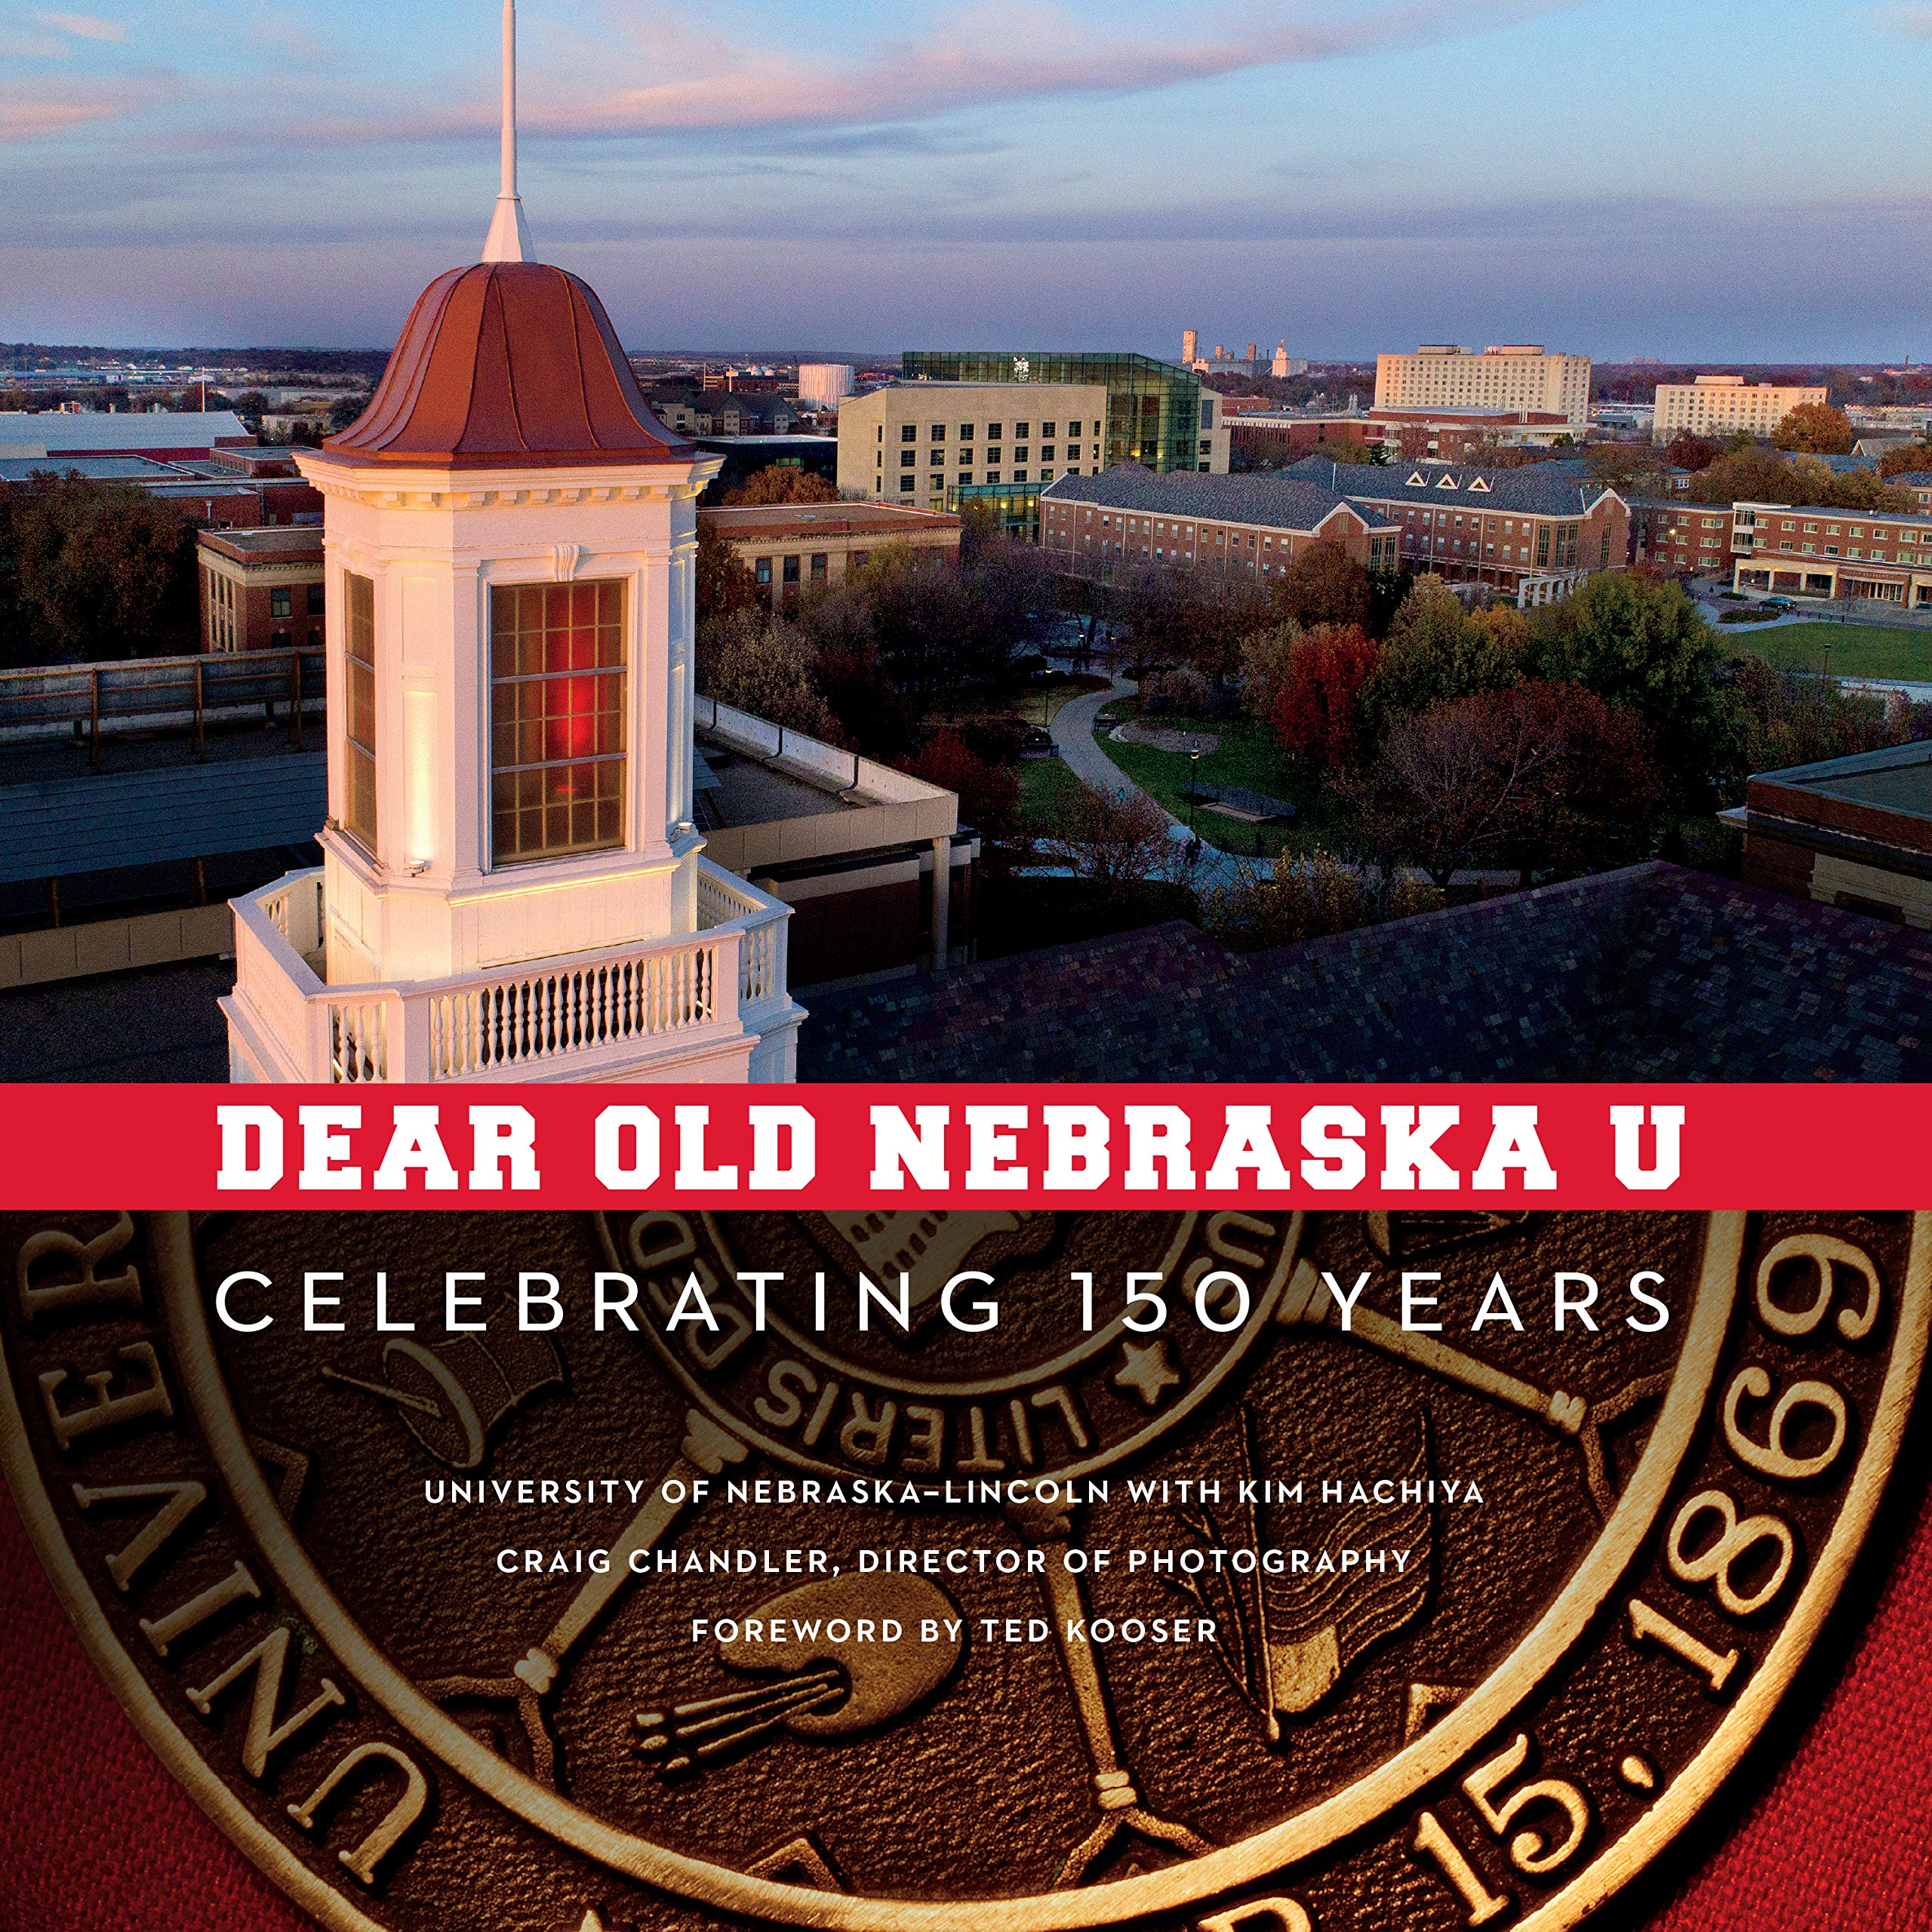 Dear Old Nebraska U book cover